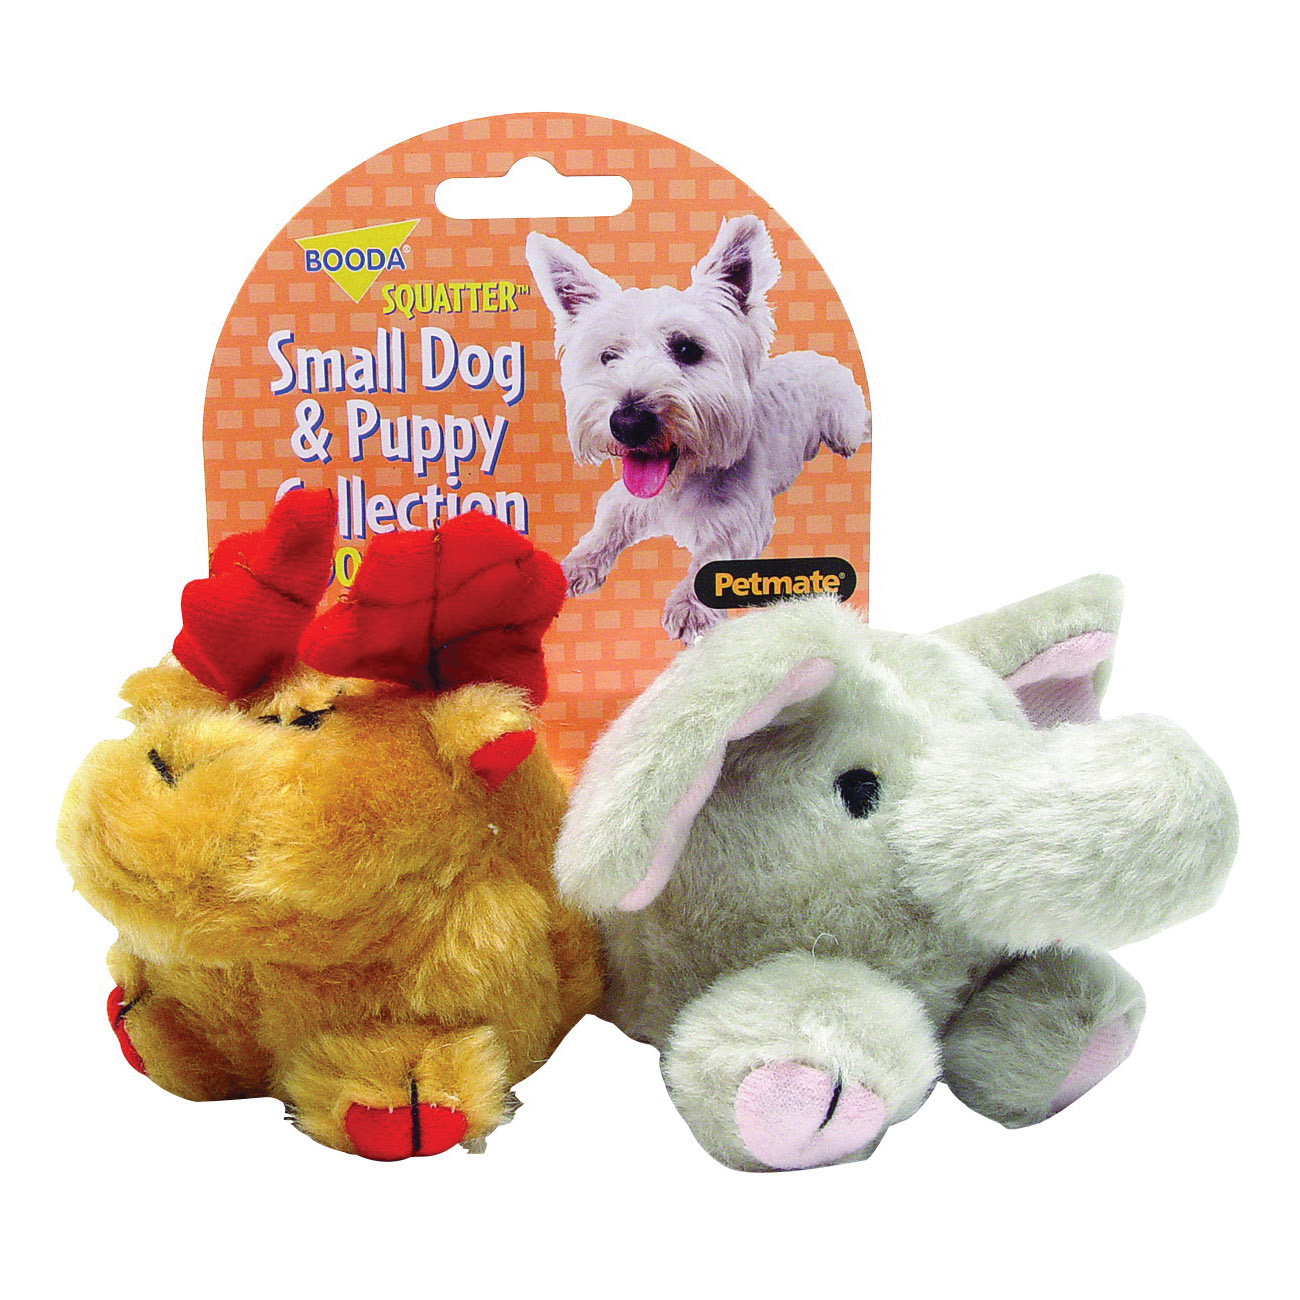 Picture of booda 0353595 Dog and Puppy Squatters, S, Elephant, Moose, Synthetic Fabric, Multi-Color